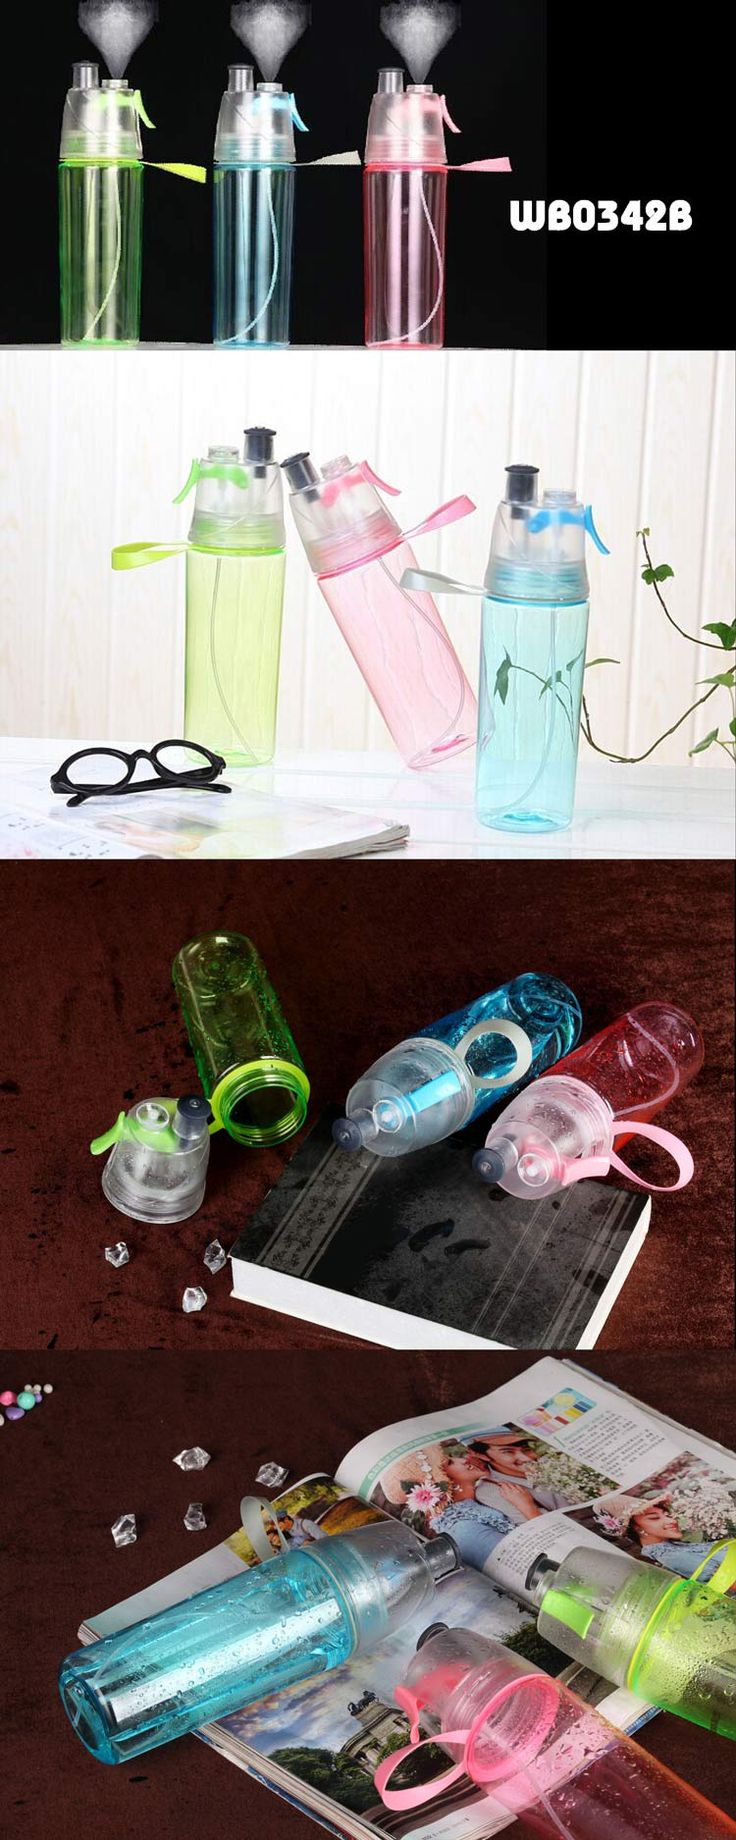 2in1 Spraying Bottle with Water Bottle    ● Material:TRITAN    ● Size:7*24CM ,550ML VOLUME    ●  Easy carry,to cold down when hot weather and make you feel comfortable,also can be normal bottle for drinking used www.ideagroupigm.com